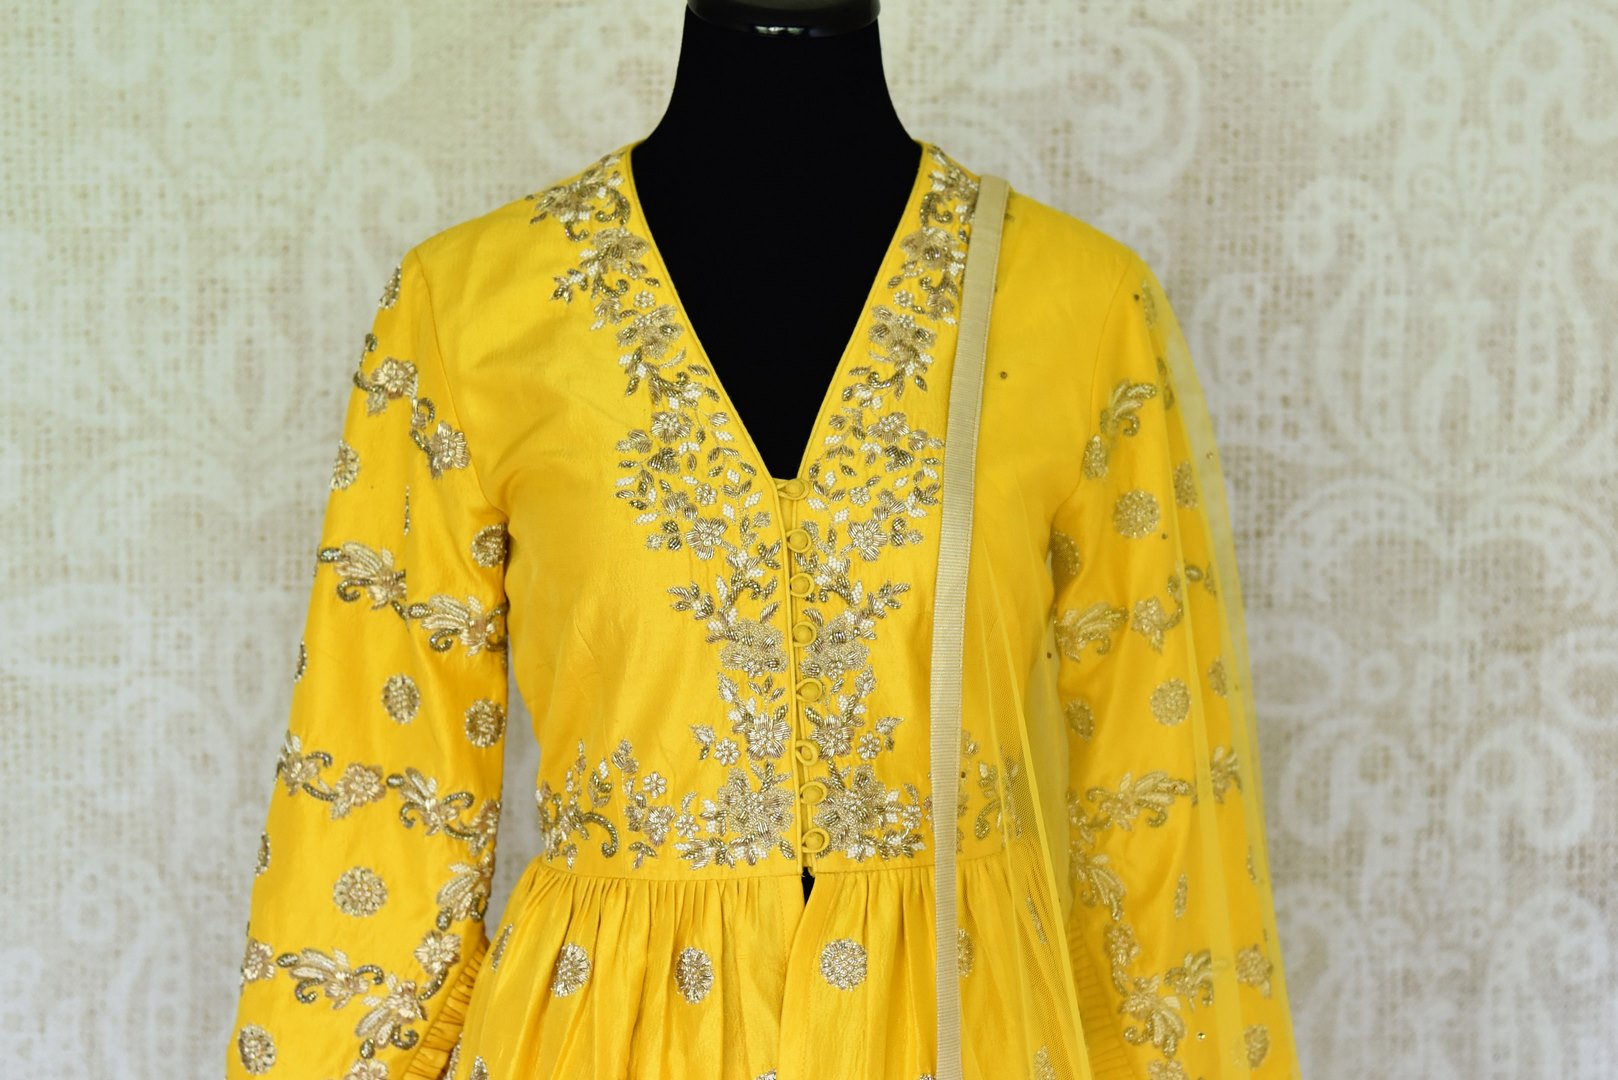 Buy yellow embroidered peplum kurti with skirt online in USA and dupatta. Make every occasion special by choosing the best of designer dresses from Pure Elegance Indian clothing store in USA, Shop from a range of stunning designer lehengas, wedding dresses, Indian clothing from our online store.-kurti front